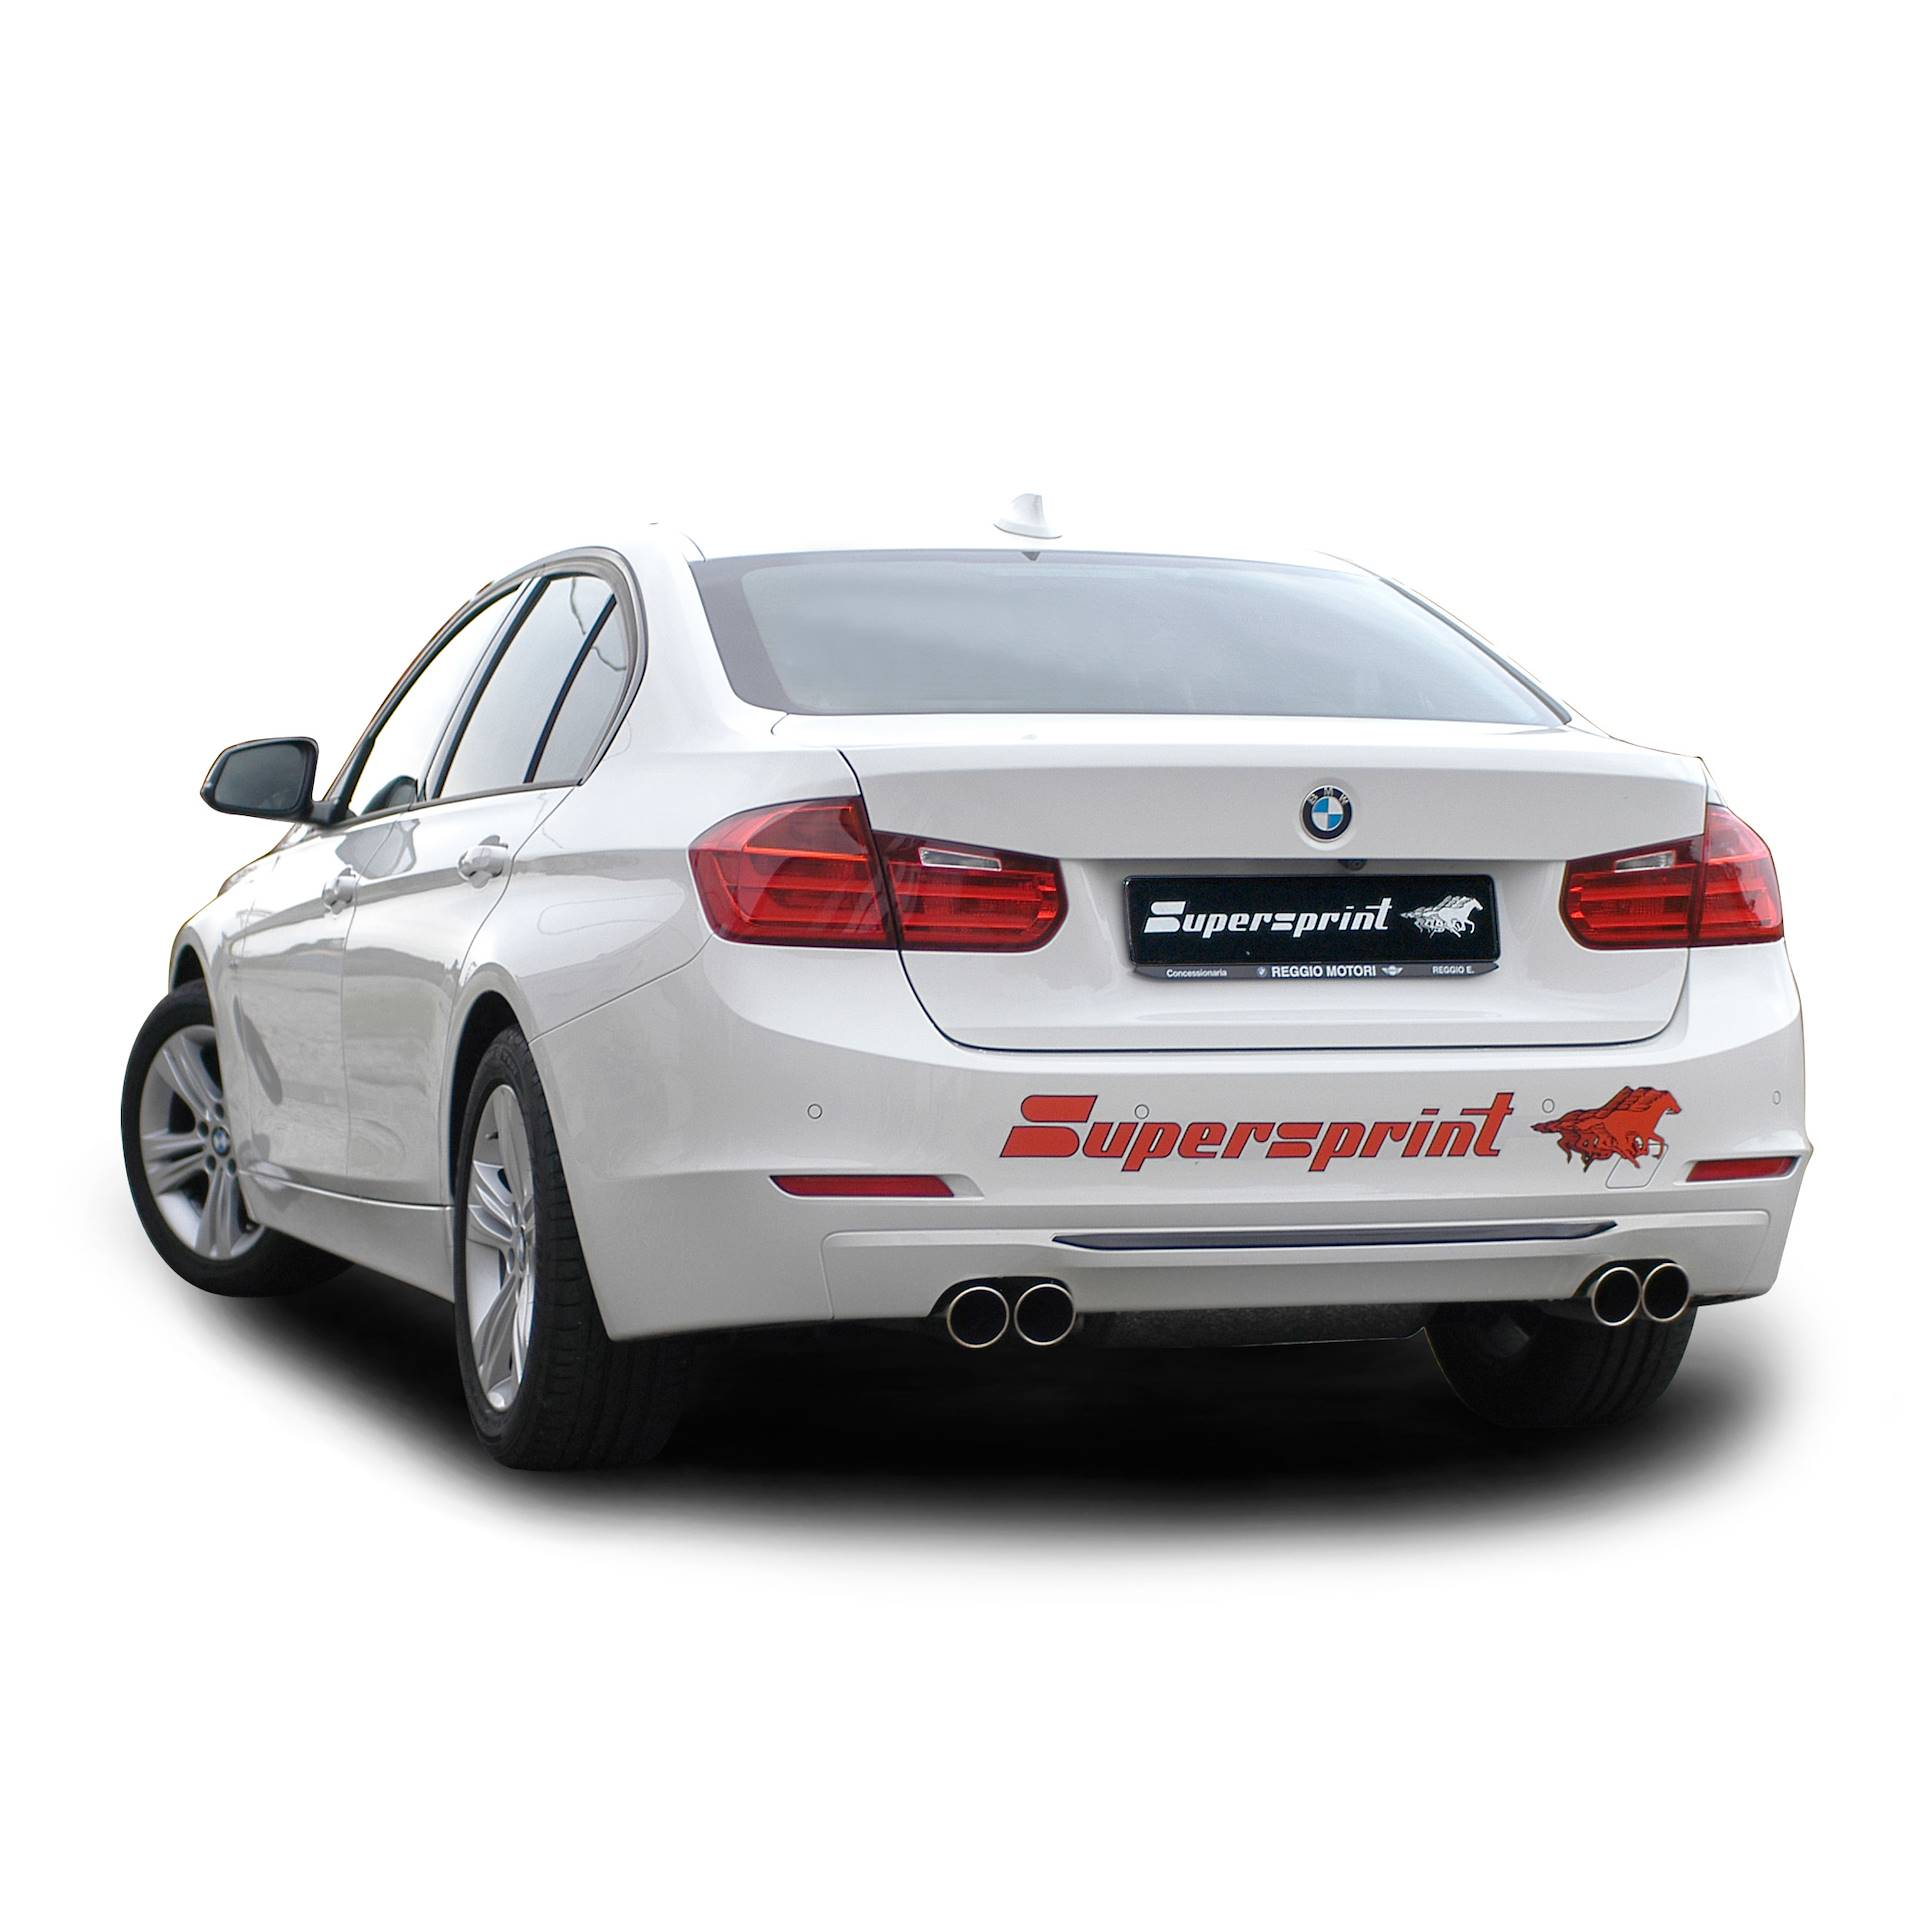 BMW F30 Sedan 328i 20T 245 Hp  Supersprint Catback system